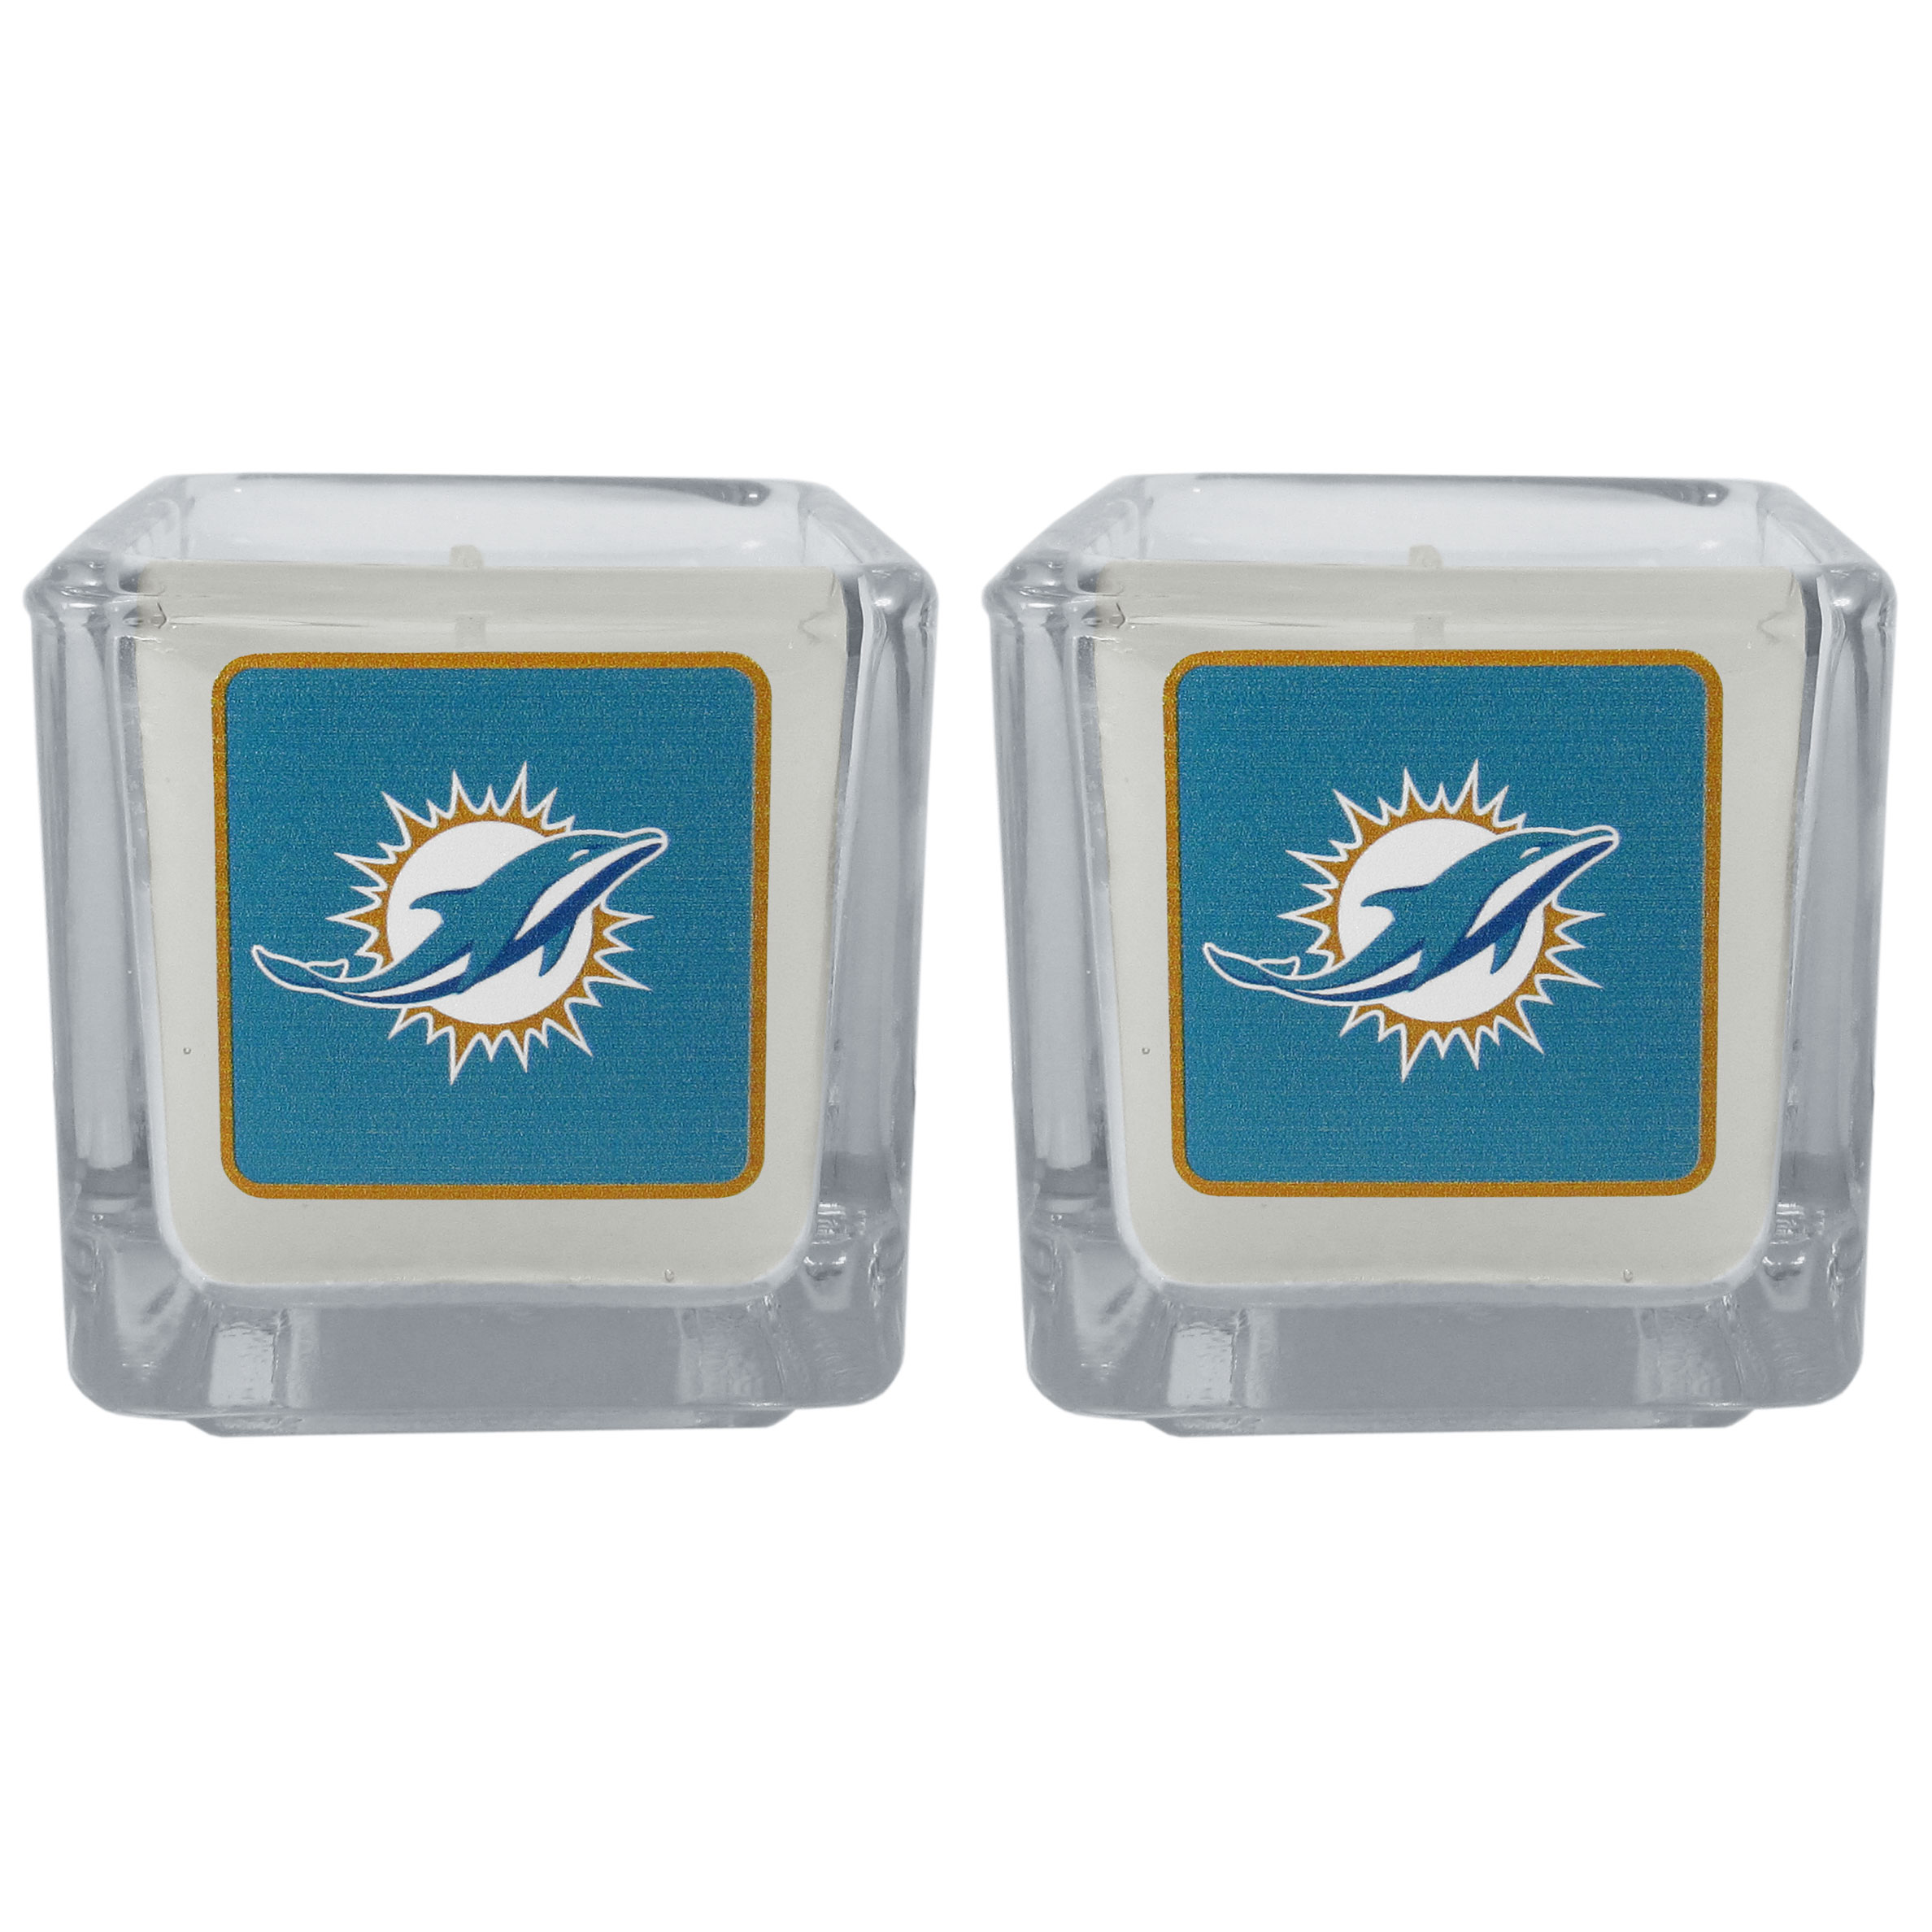 Miami Dolphins Graphics Candle Set - Our candle set features 2 lightly vanilla scented candles with the Miami Dolphins logo expertly printed on front. The candles are 2 inches tall in the votive style.